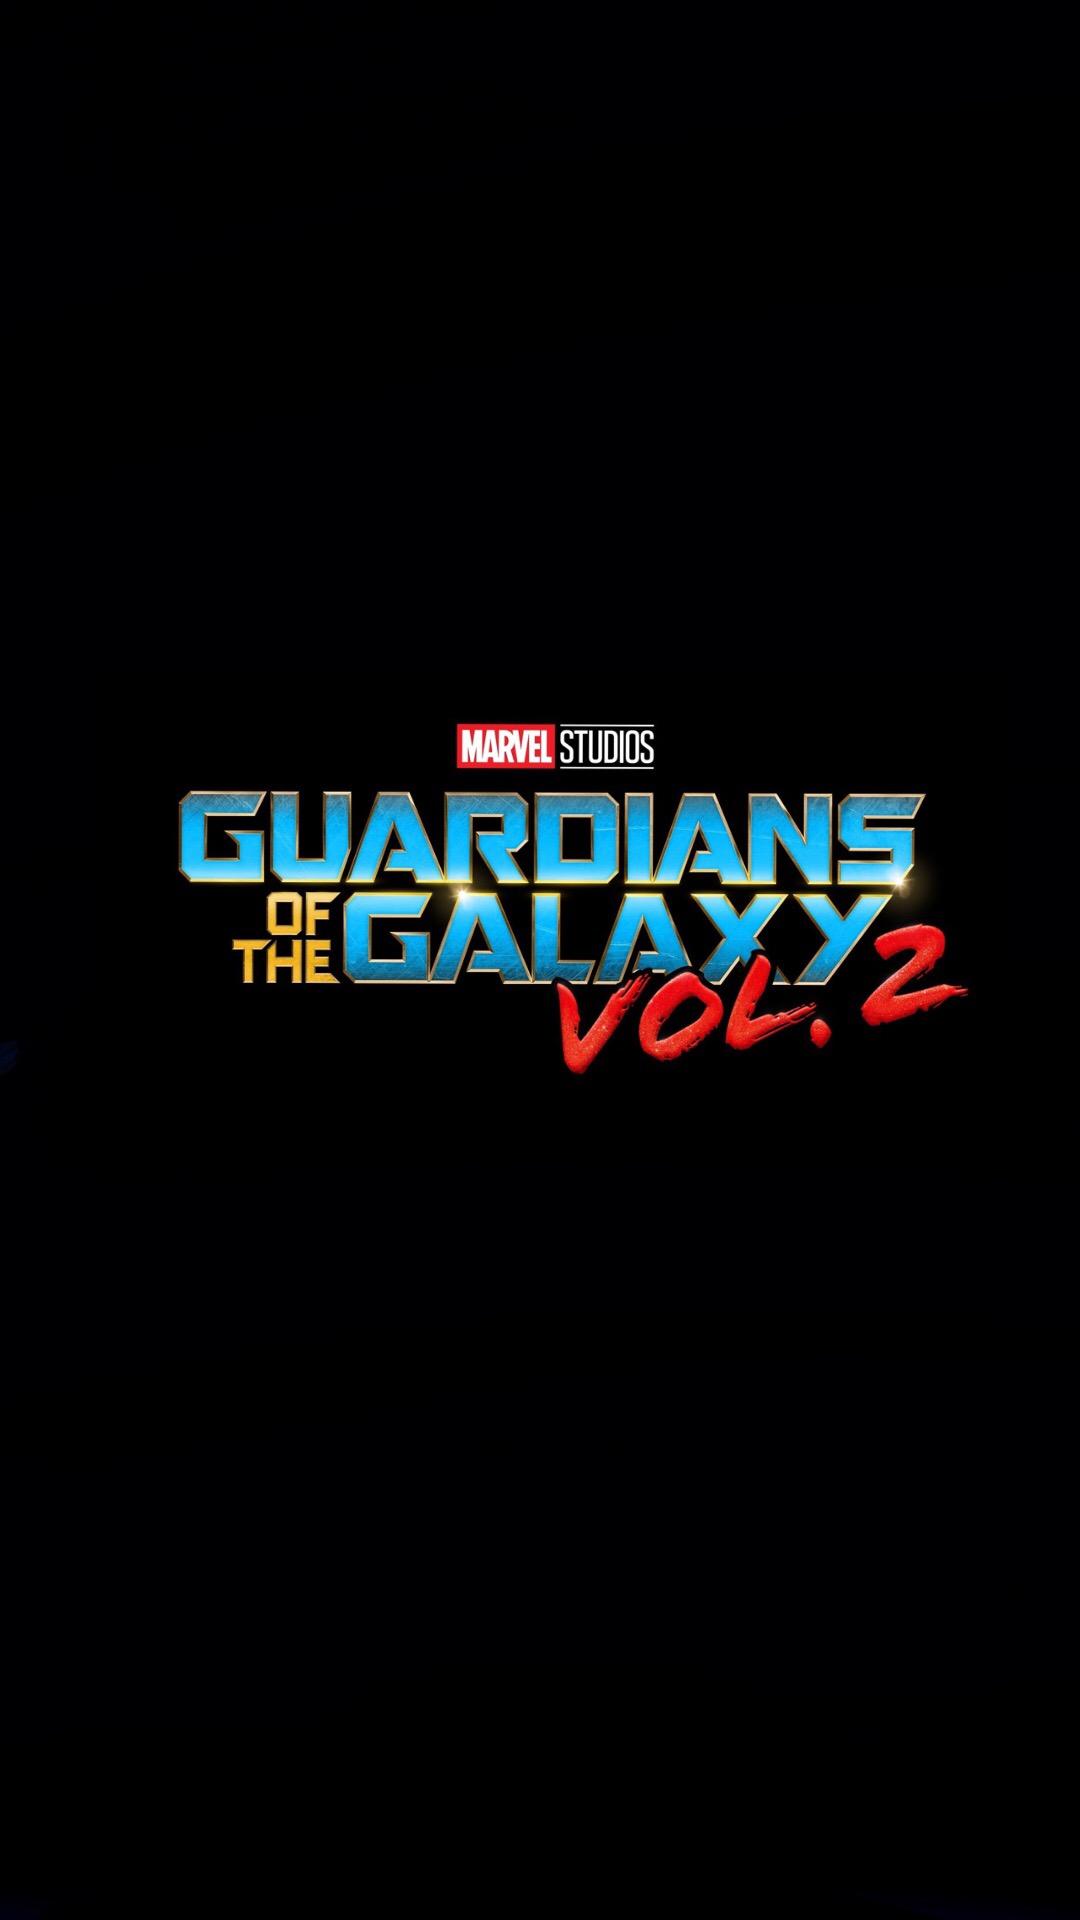 Iphone X Oled Wallpaper Guardians Of The Galaxy Vol 2 Wallpapers